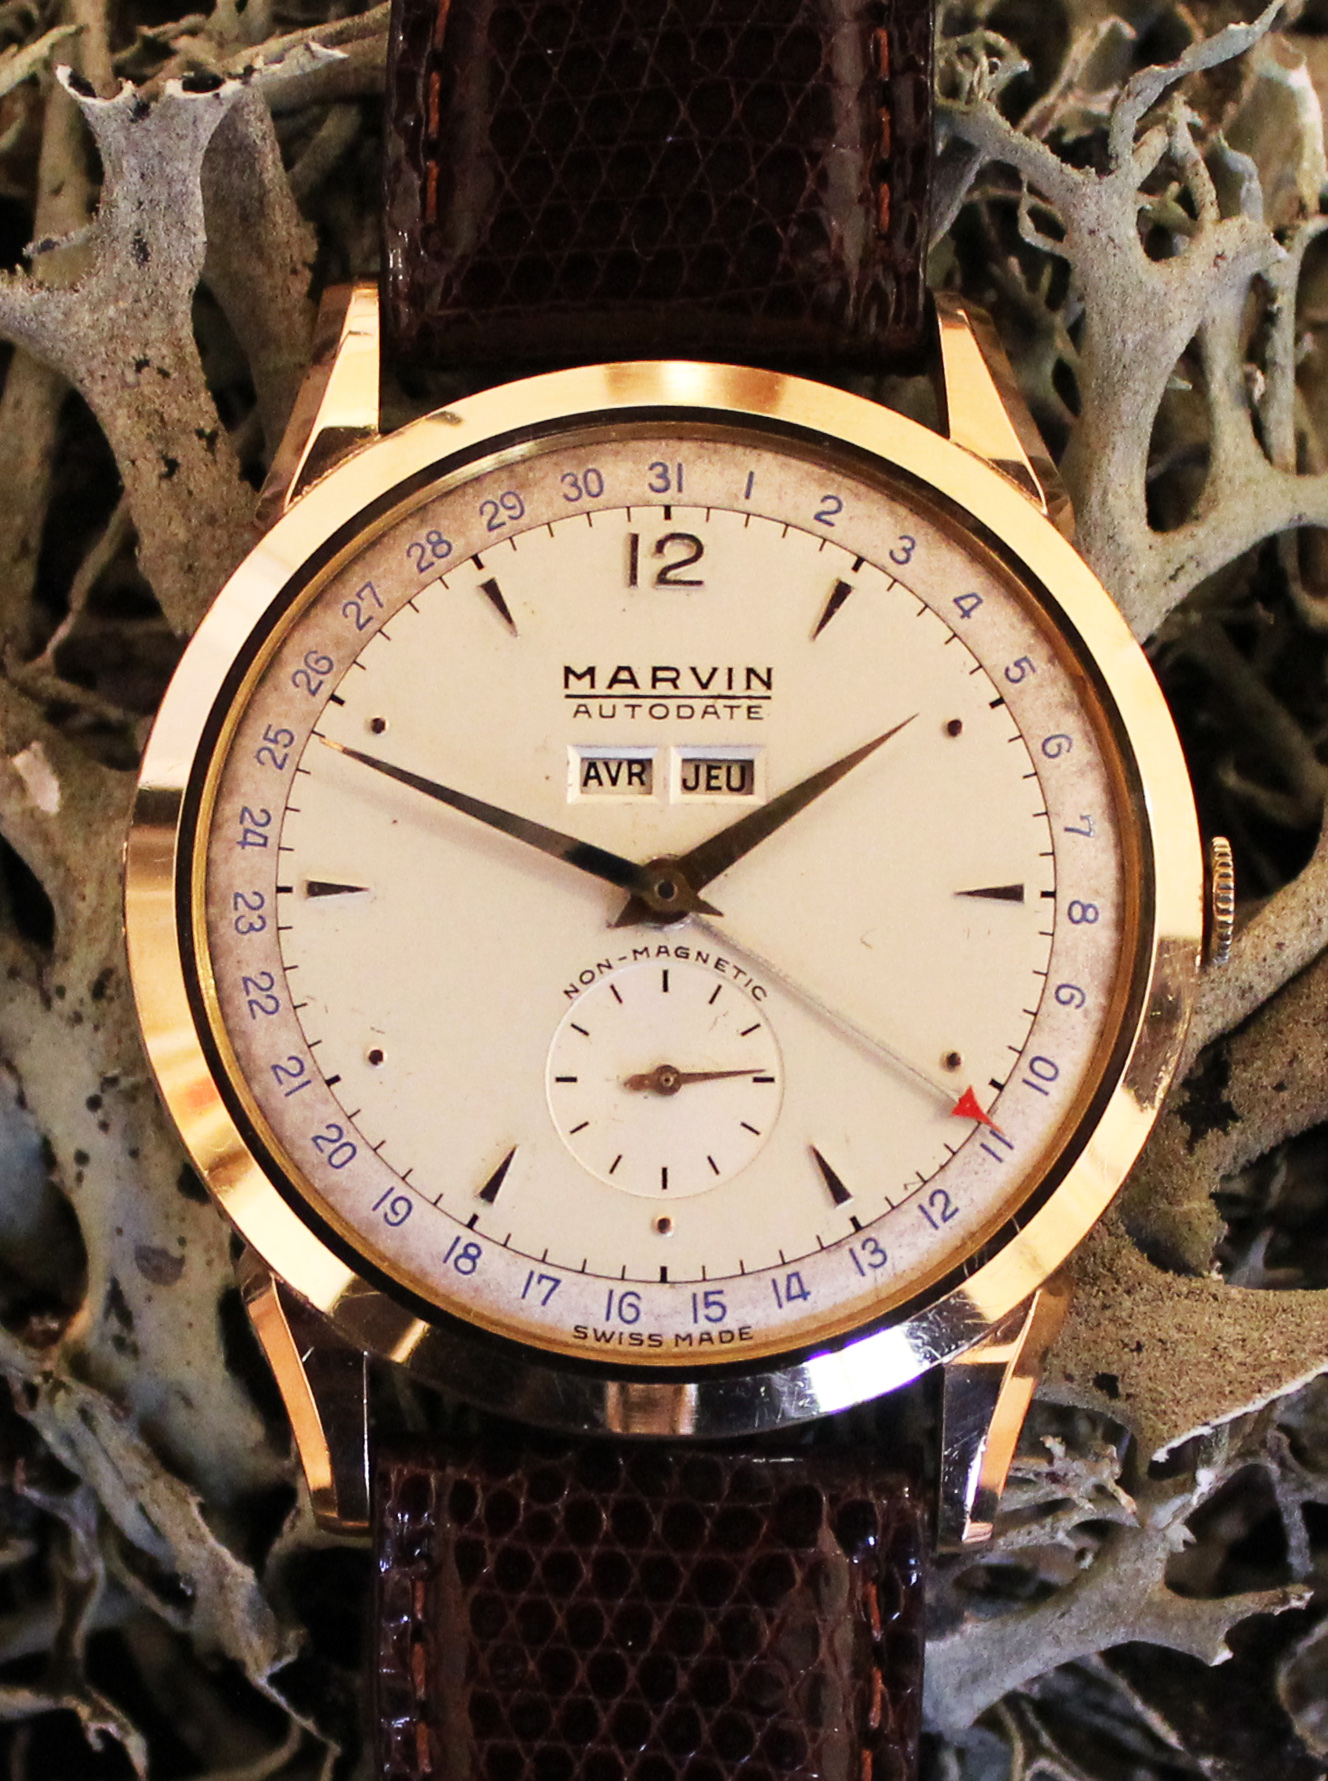 Marvin Autodate calendar in rose gold